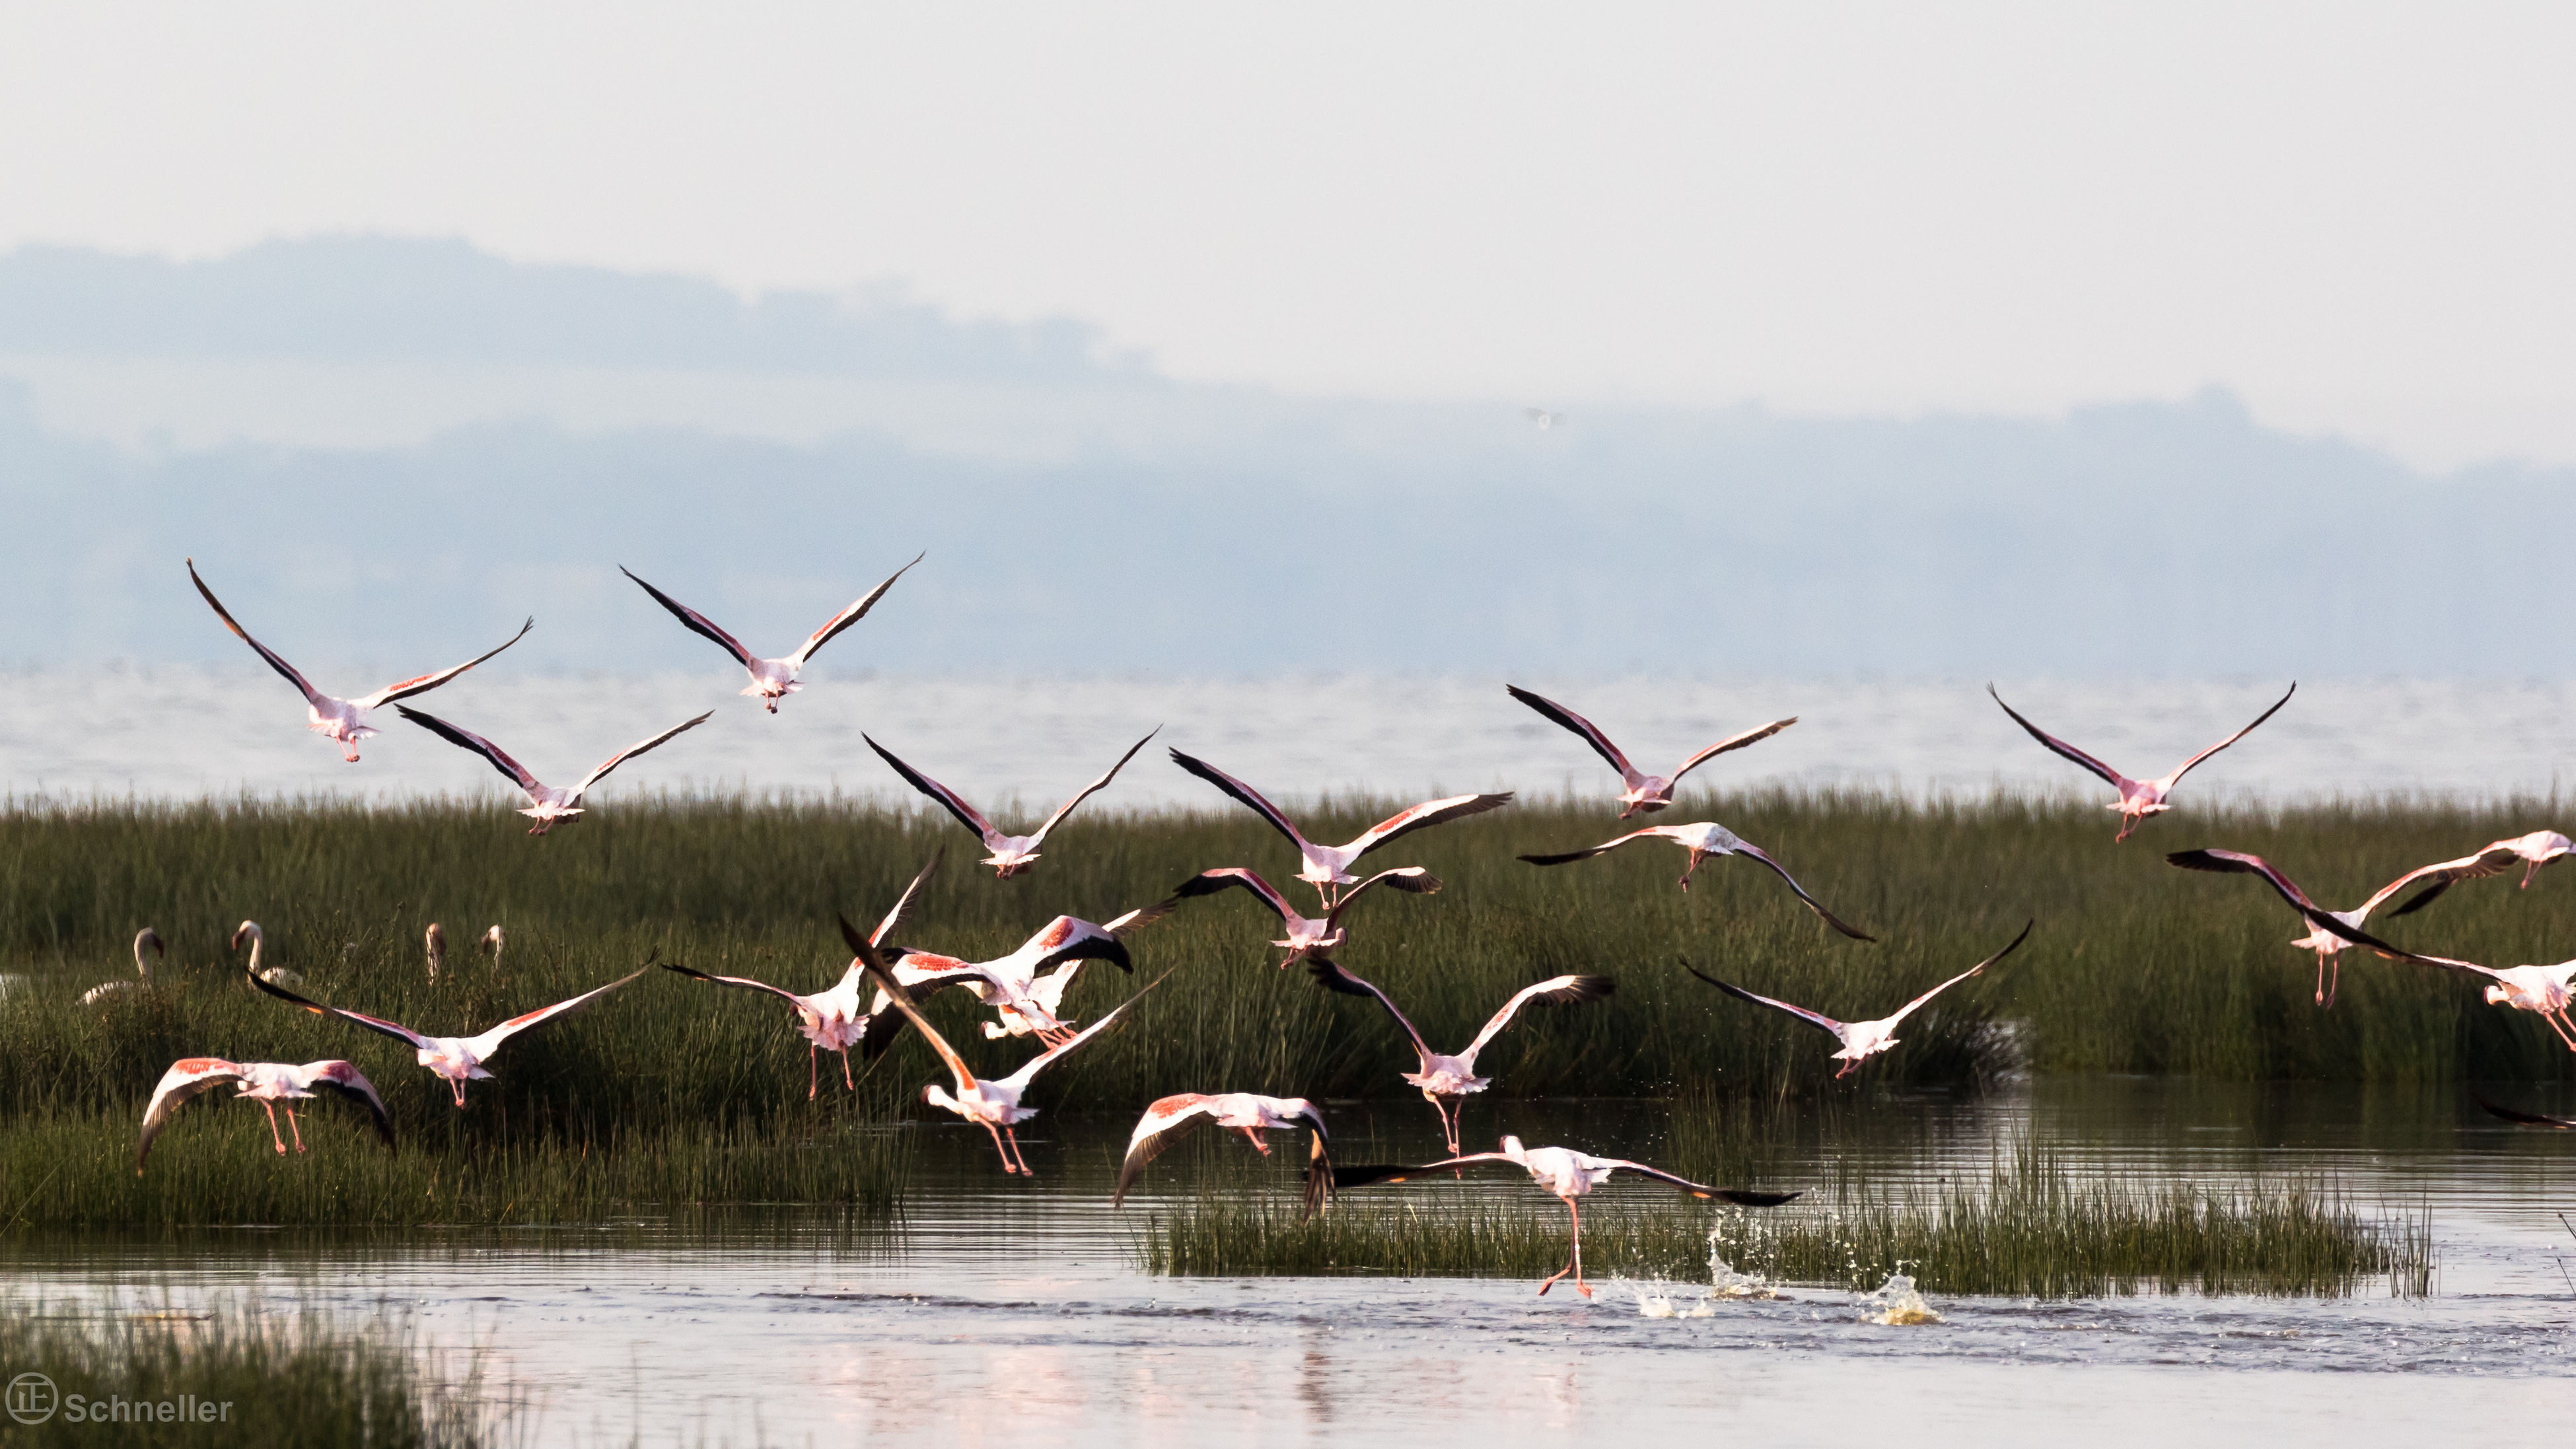 animal themes, bird, flying, animals in the wild, water, wildlife, spread wings, flock of birds, lake, seagull, togetherness, tranquility, zoology, sky, non-urban scene, nature, tranquil scene, waterfront, beauty in nature, migrating, mid-air, perching, sea, shore, day, scenics, water bird